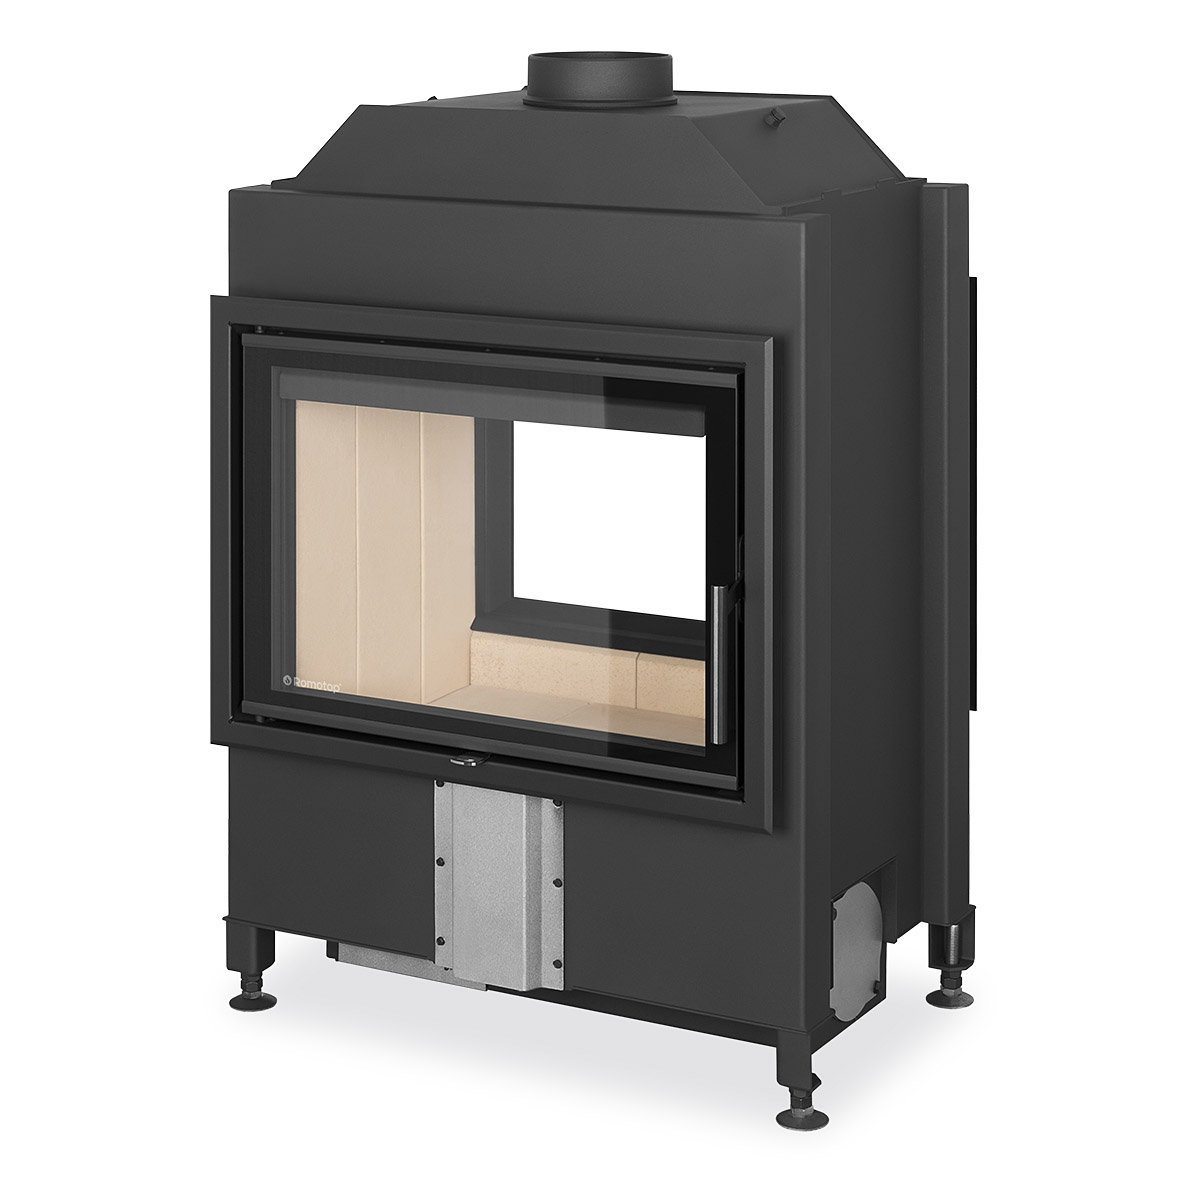 Fireplace Doesnt Heat: Romotop HEAT T 3g 70.50.01 - Tunnel Fireplace Insert